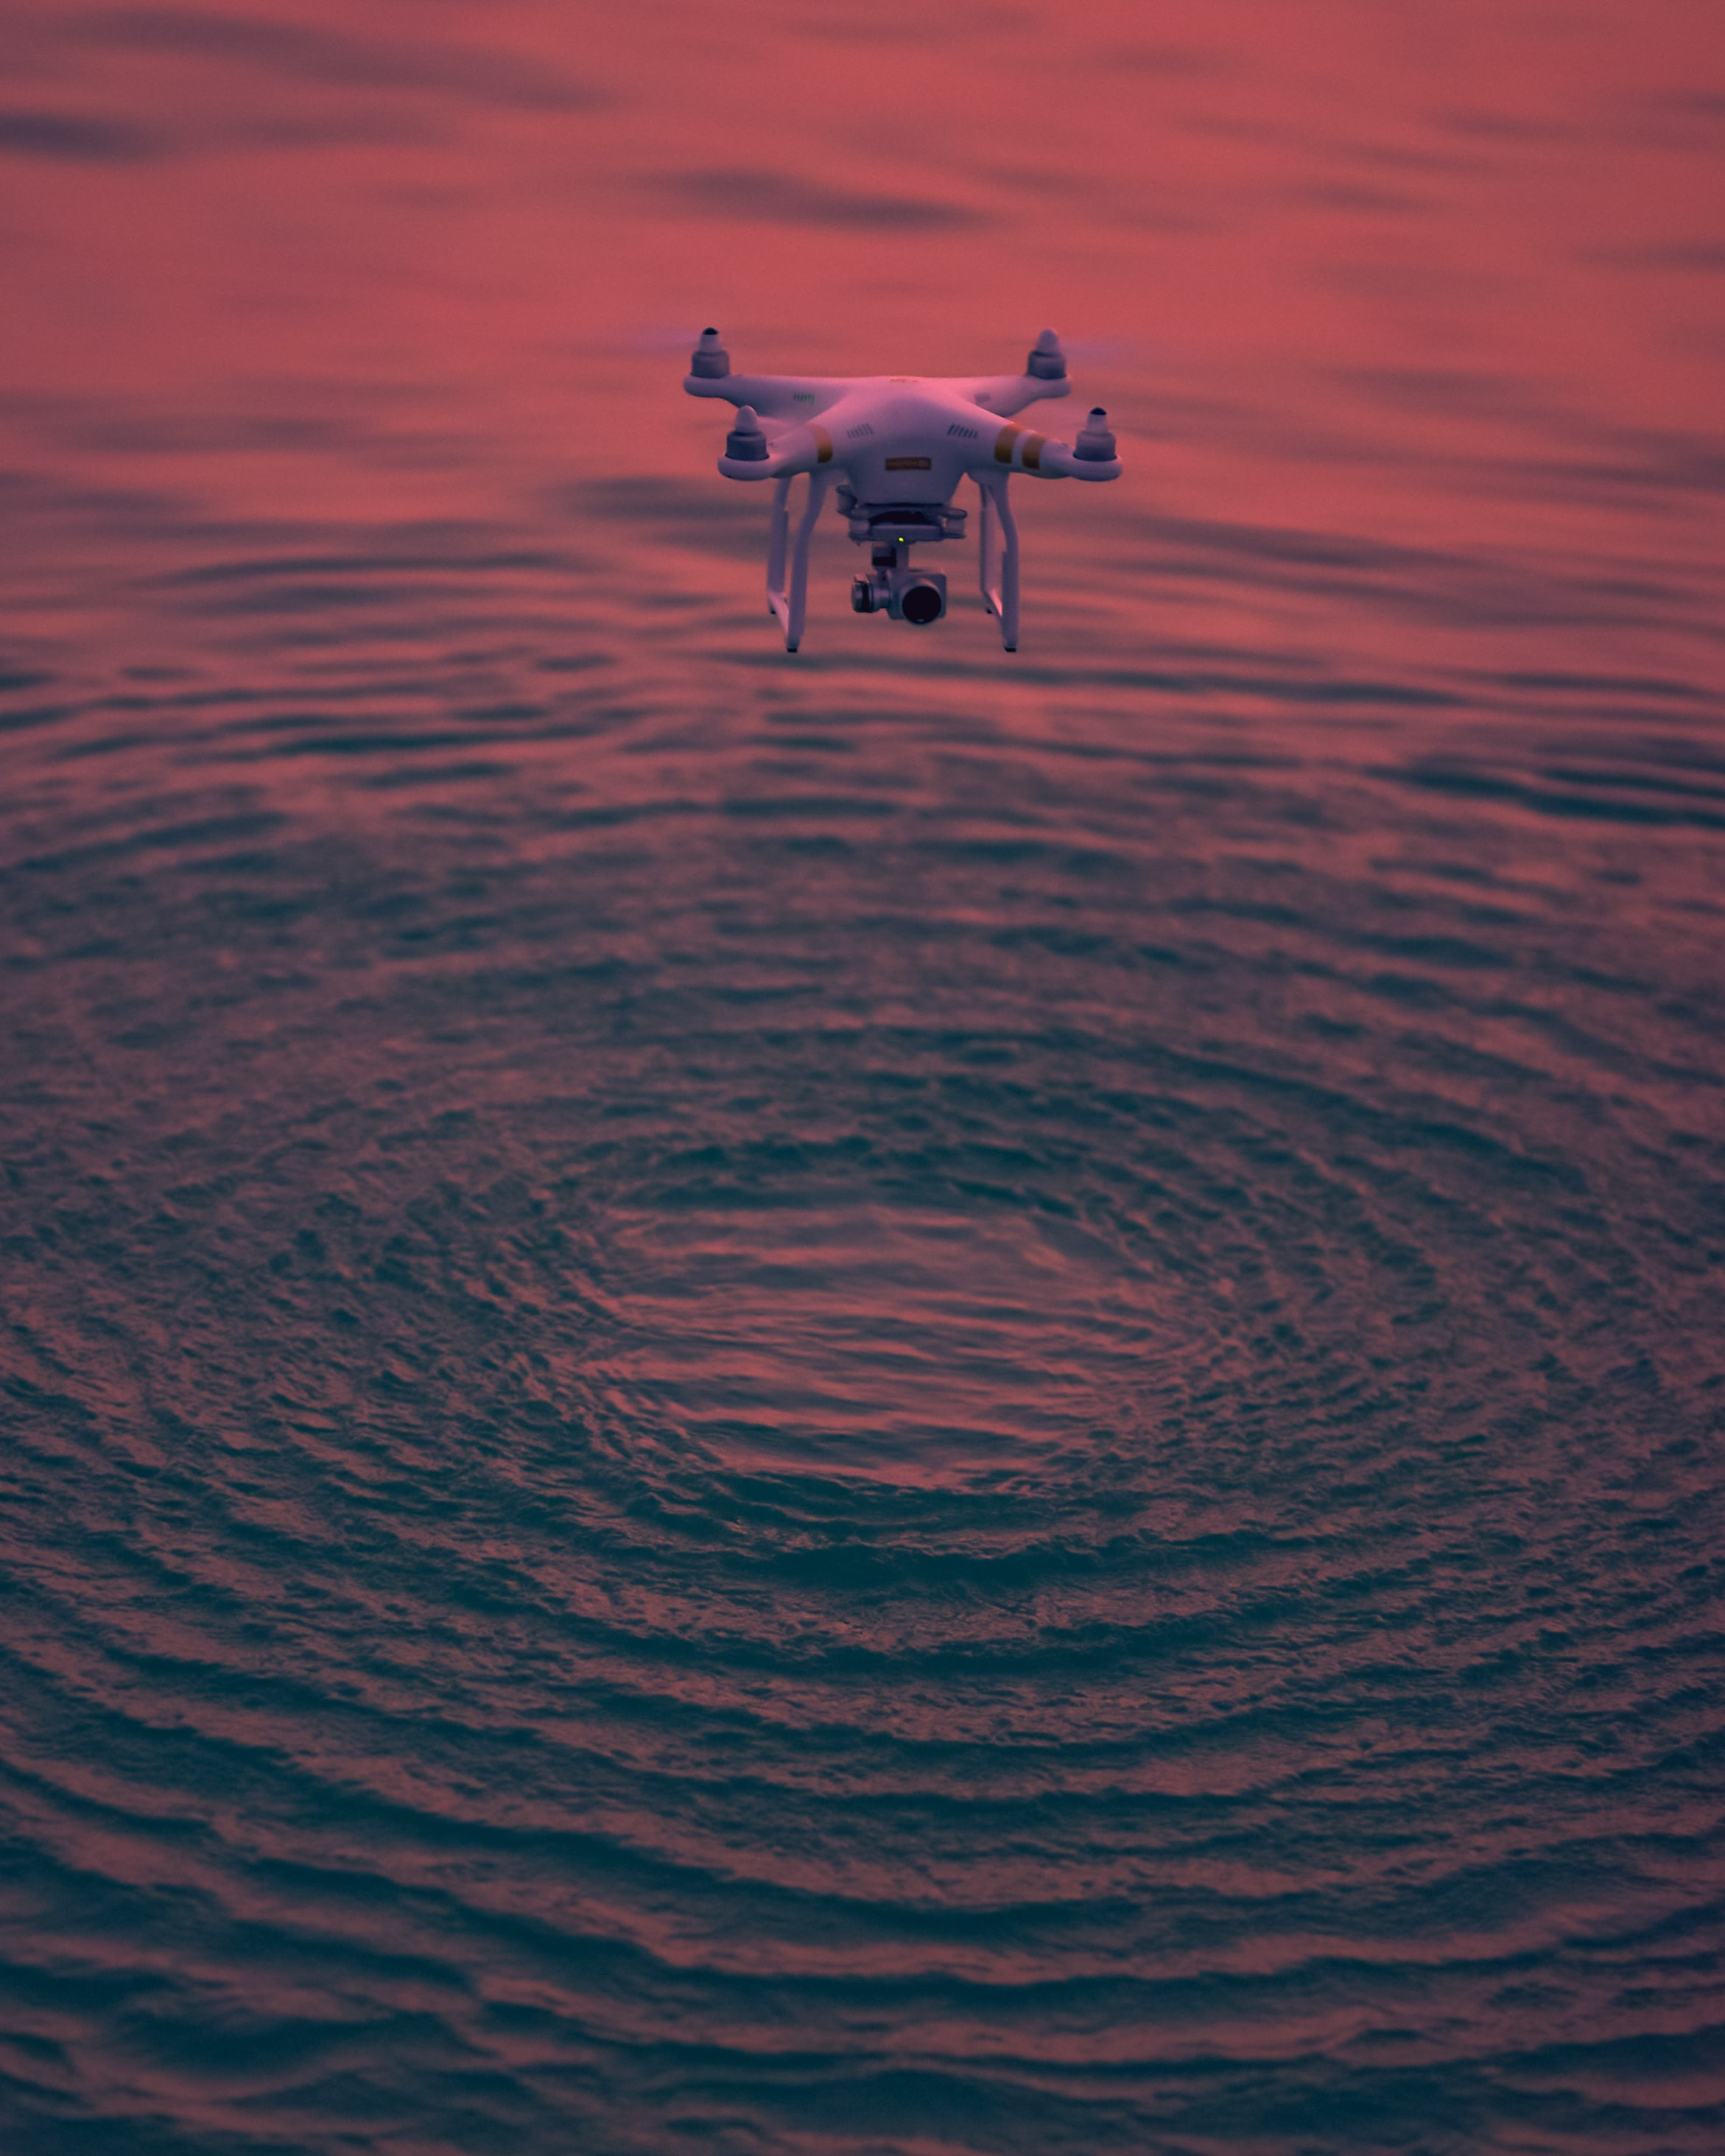 yellow DJI Phantom Pro above water during golden hour